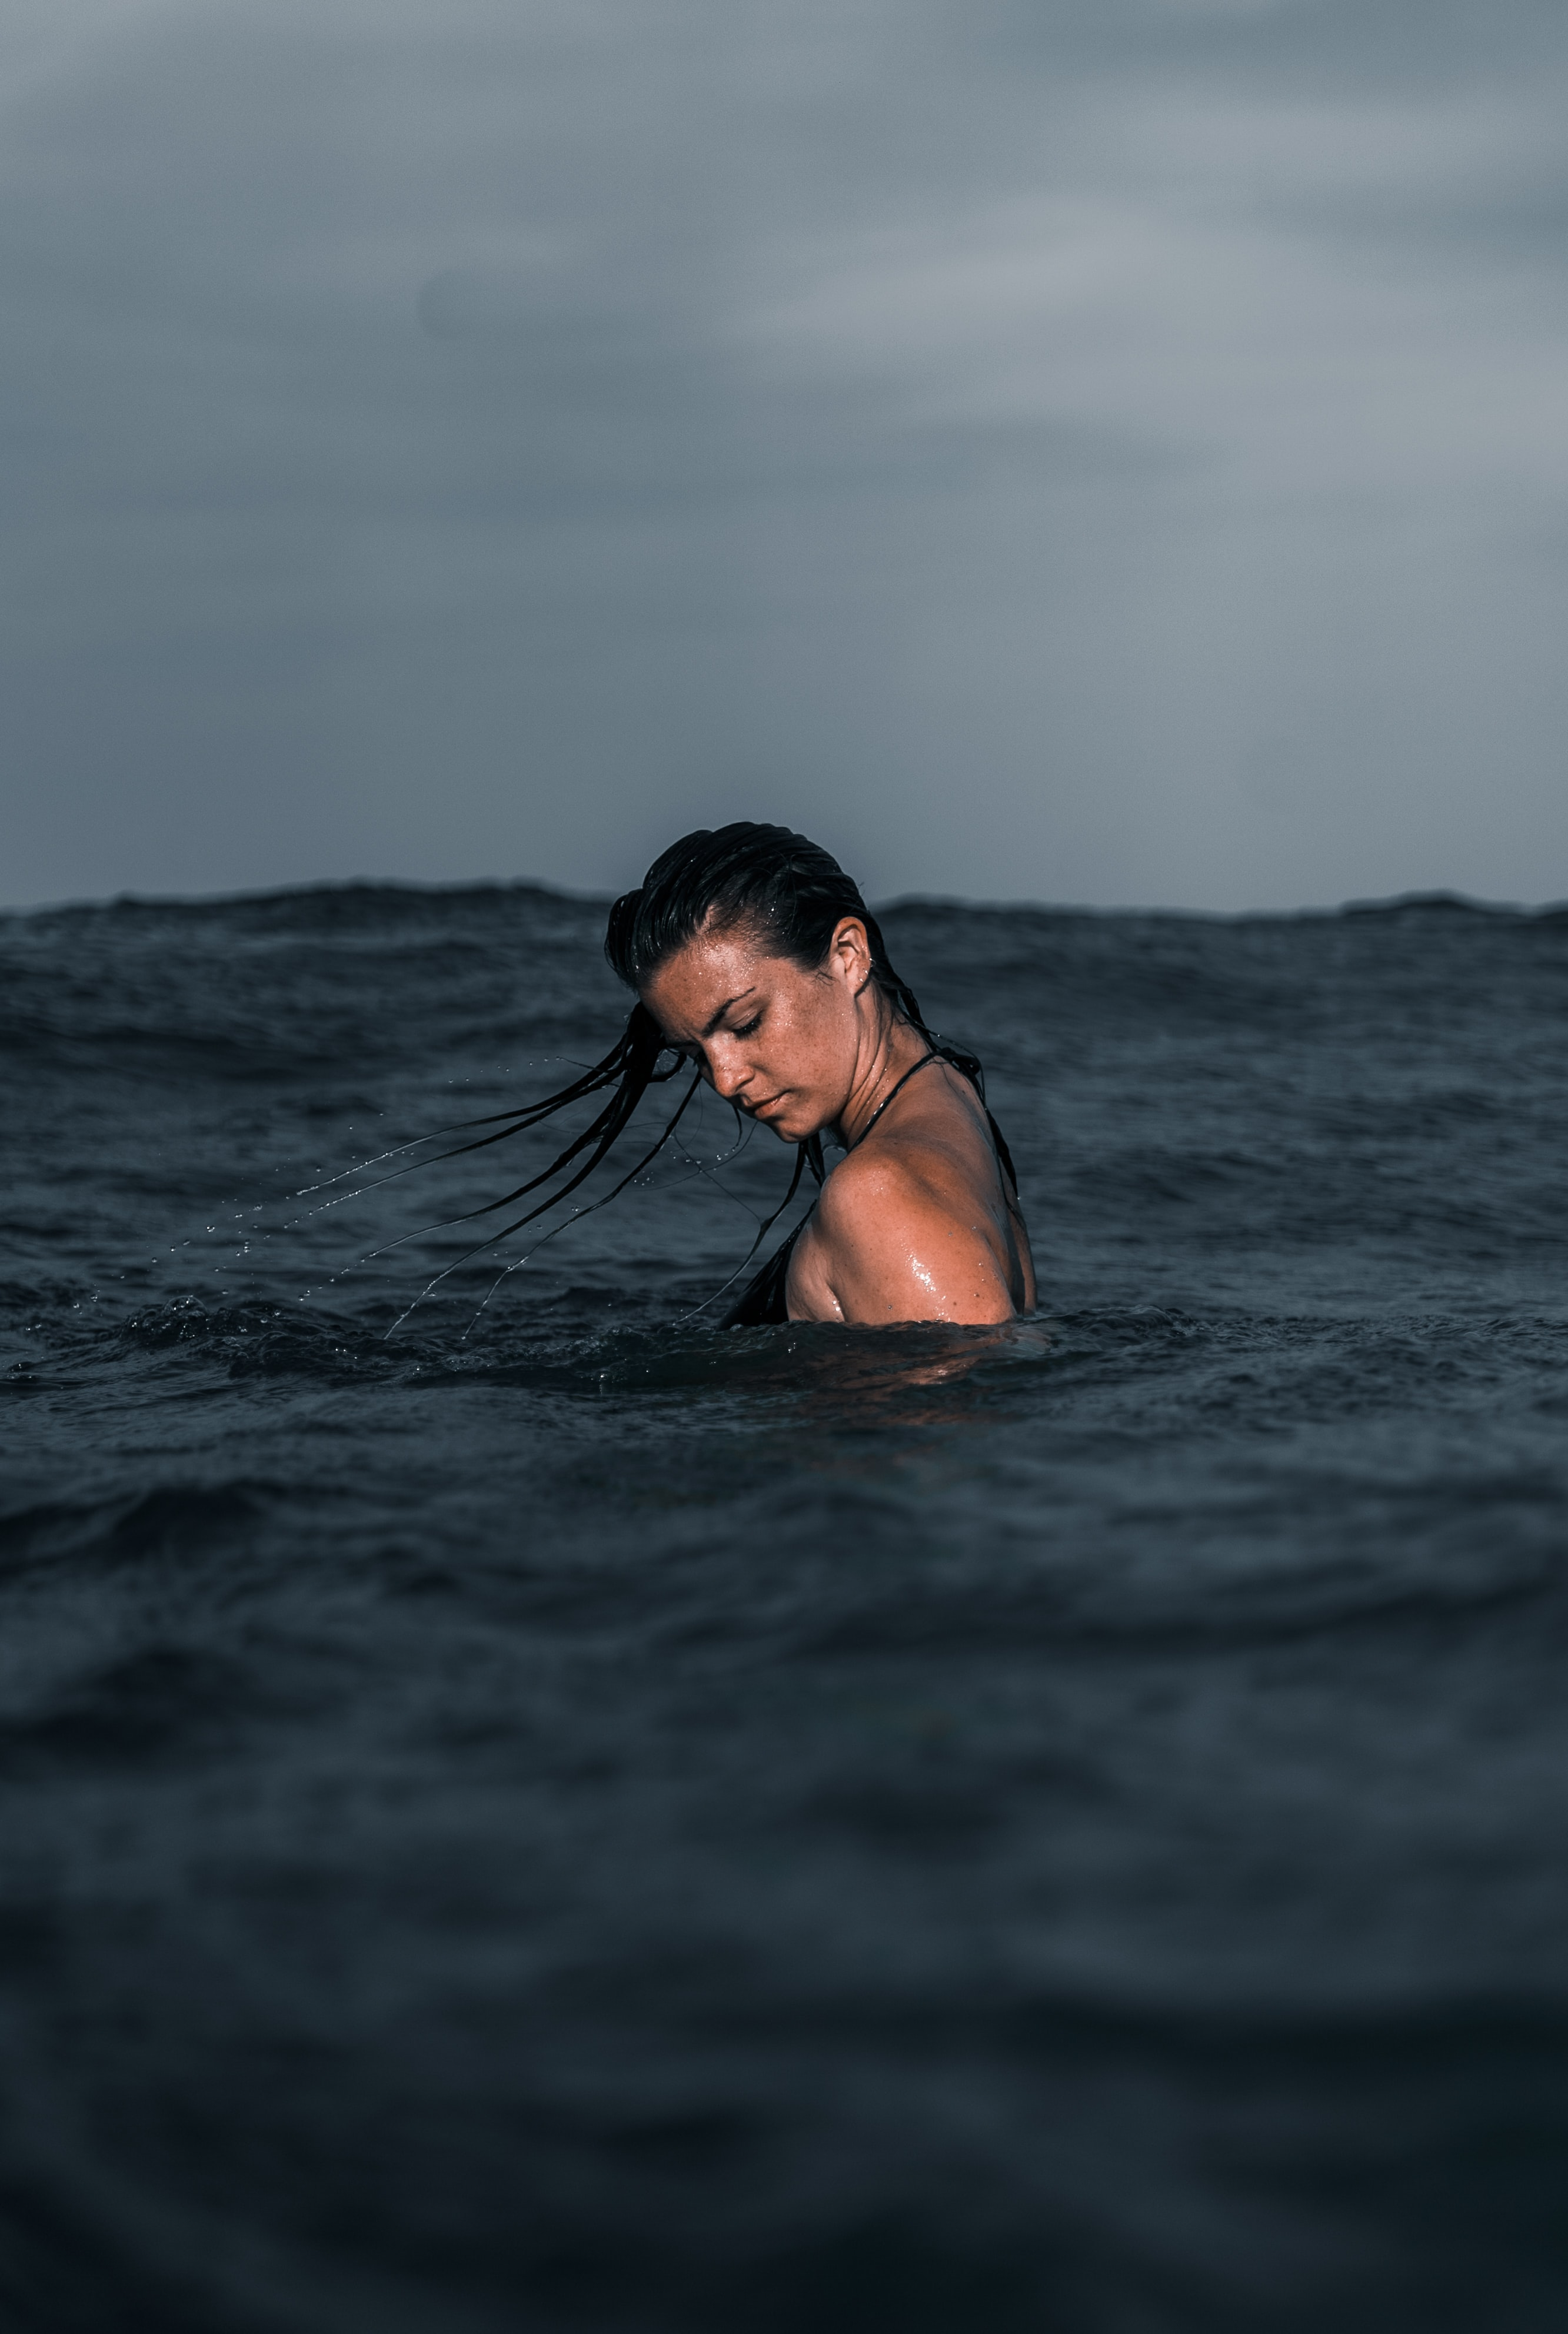 woman in body of water during day